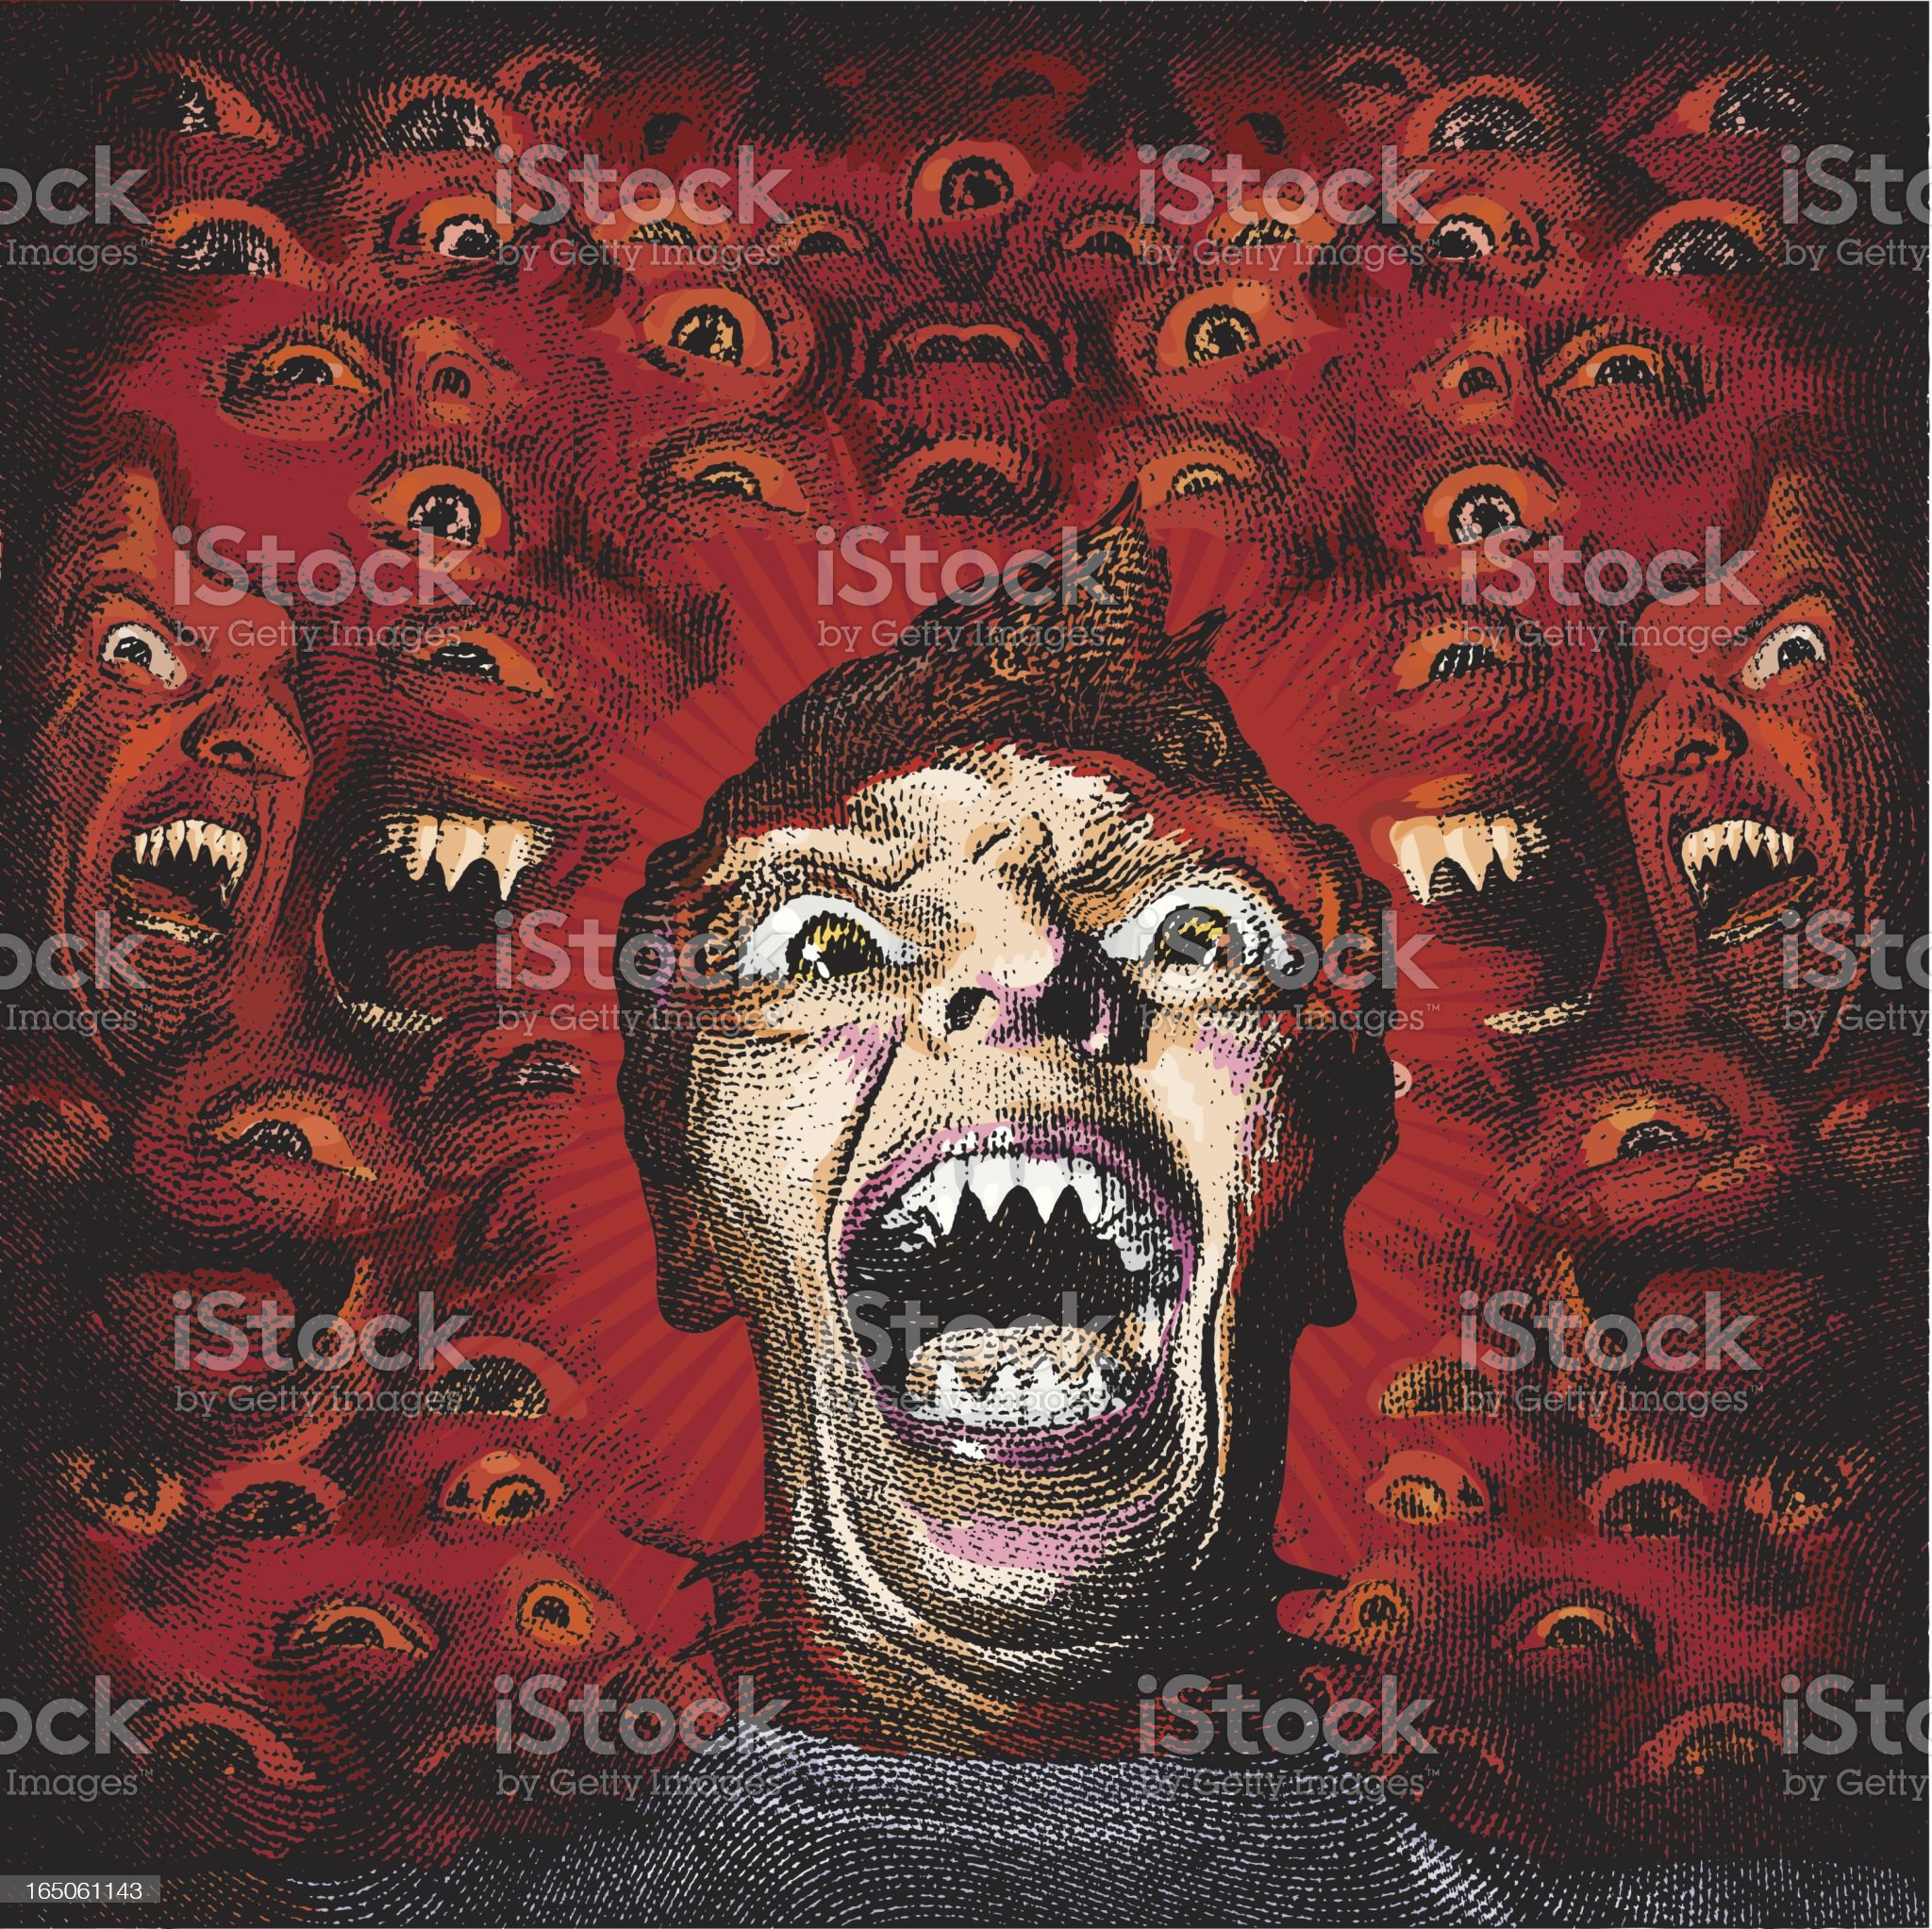 Scary Portrait of Man with Sharp Teeth royalty-free stock vector art